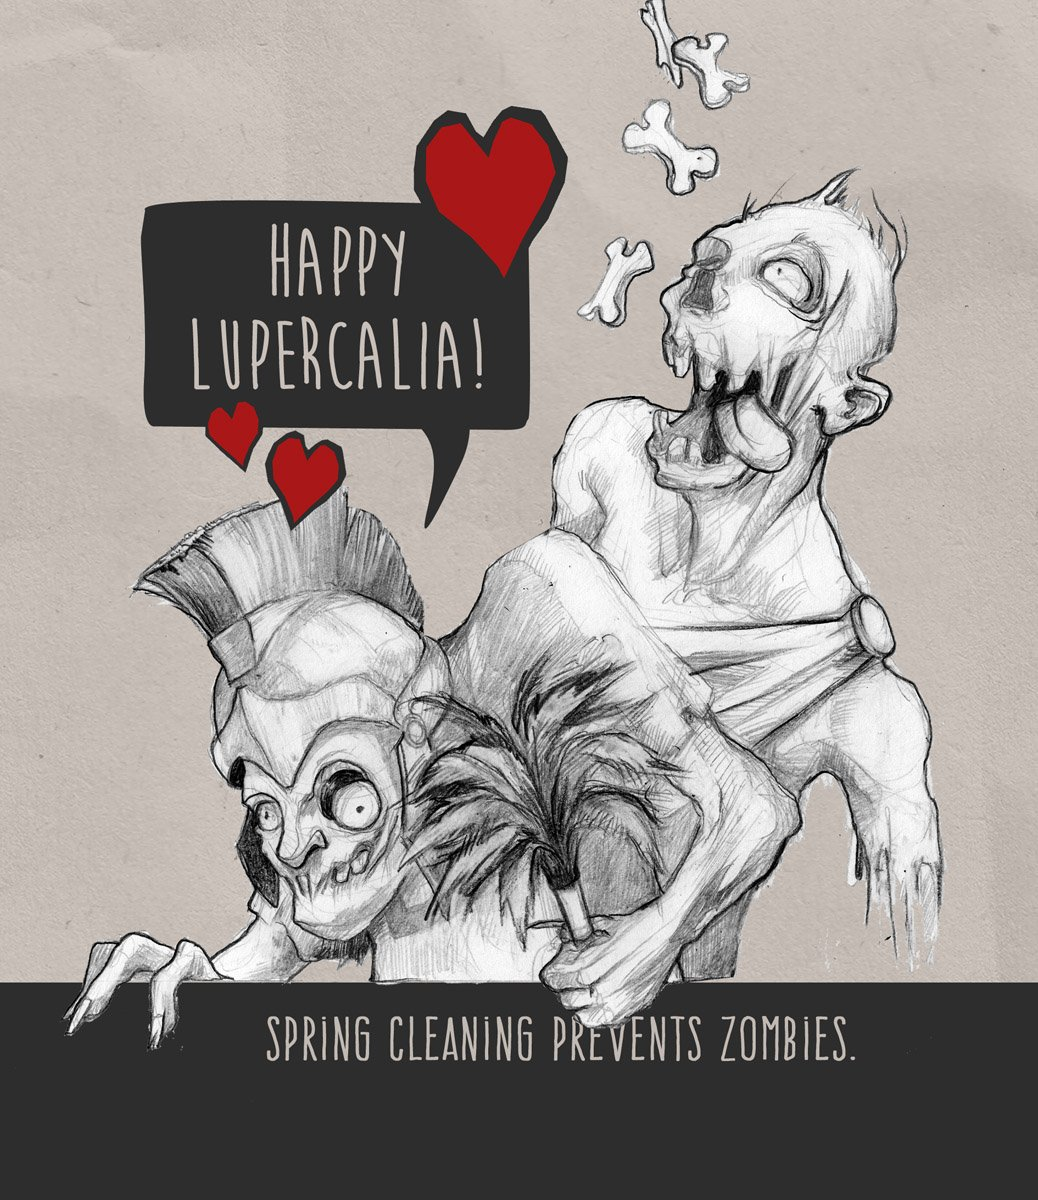 Not into #Valentine'sDay? How about an alternative? LUPERCALIA has zombies, streakers in leather thongs and dead puppies!  Ok, the last one might be a turn-off, but hear me out: https://t.co/wUeQHT22En